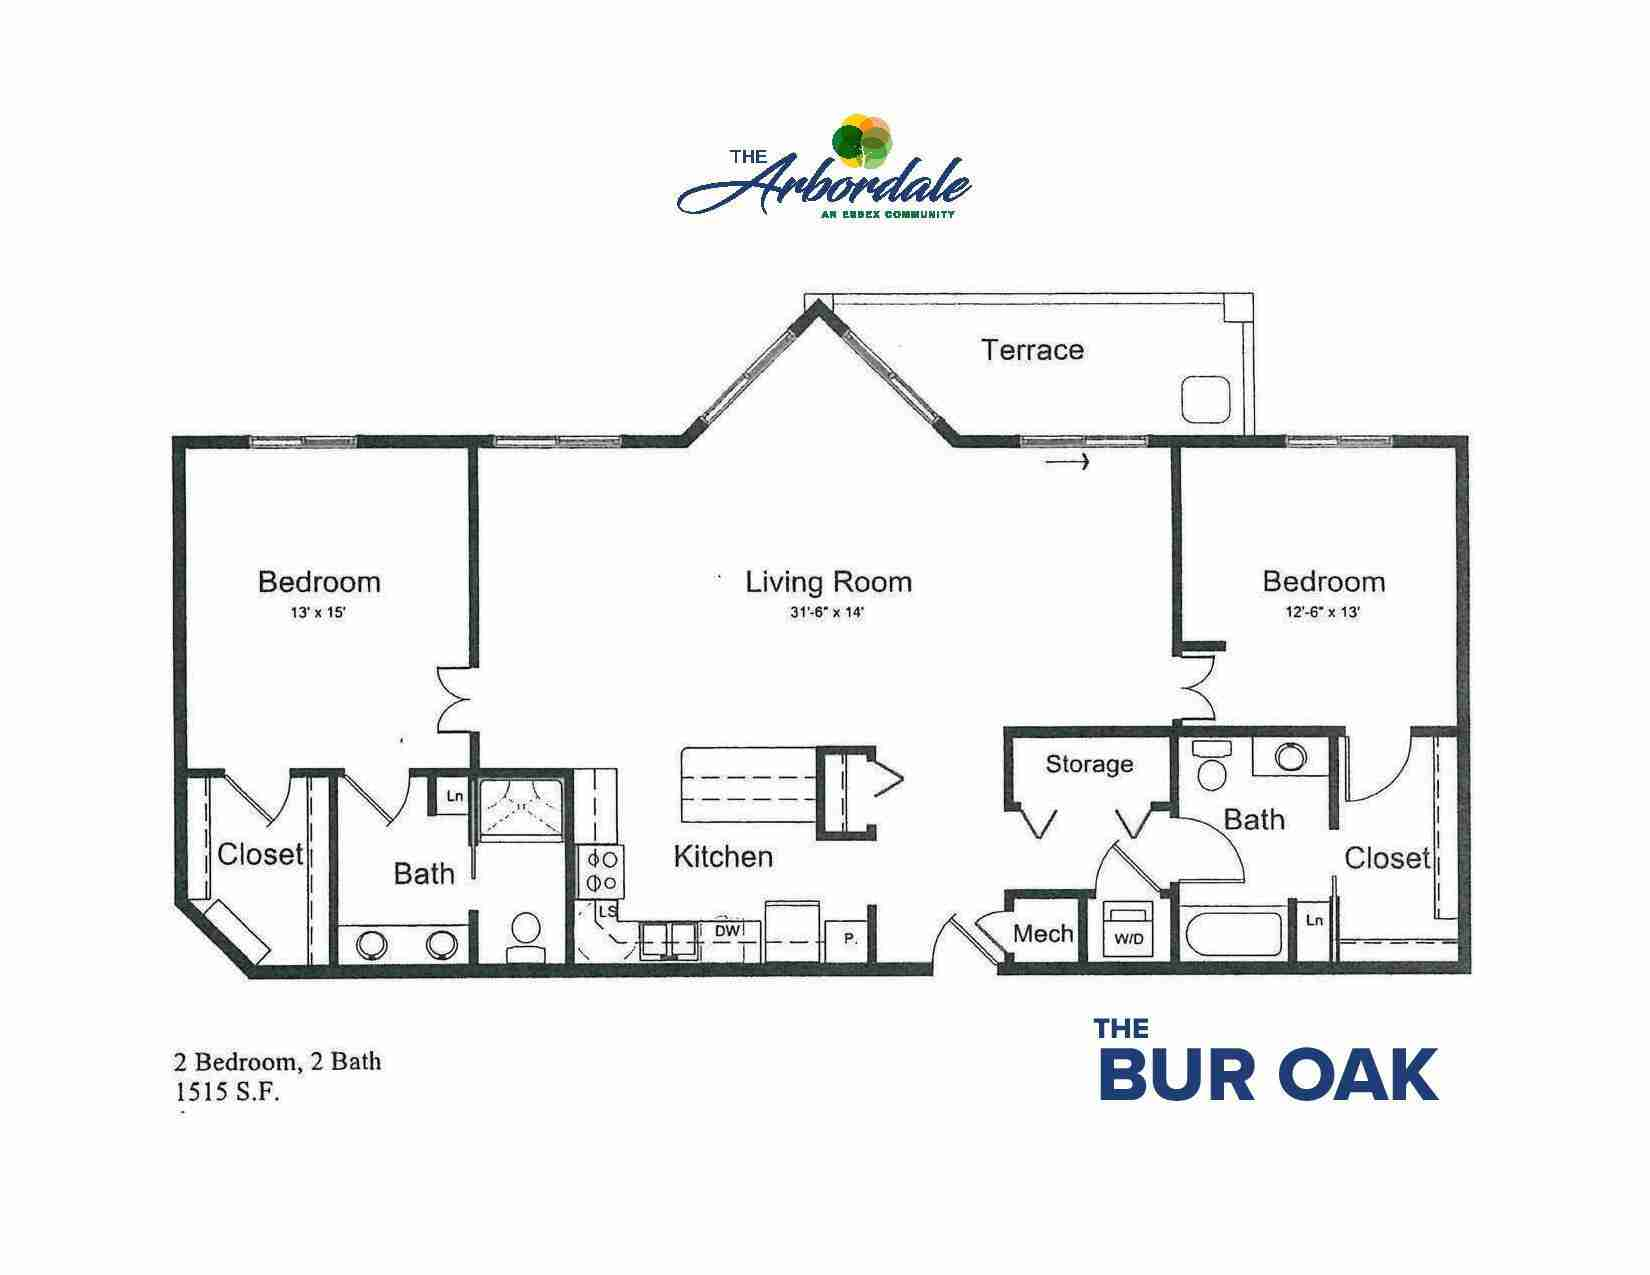 the bur oak floor plan, 2 bedroom, 2 bath, 1515 sq ft